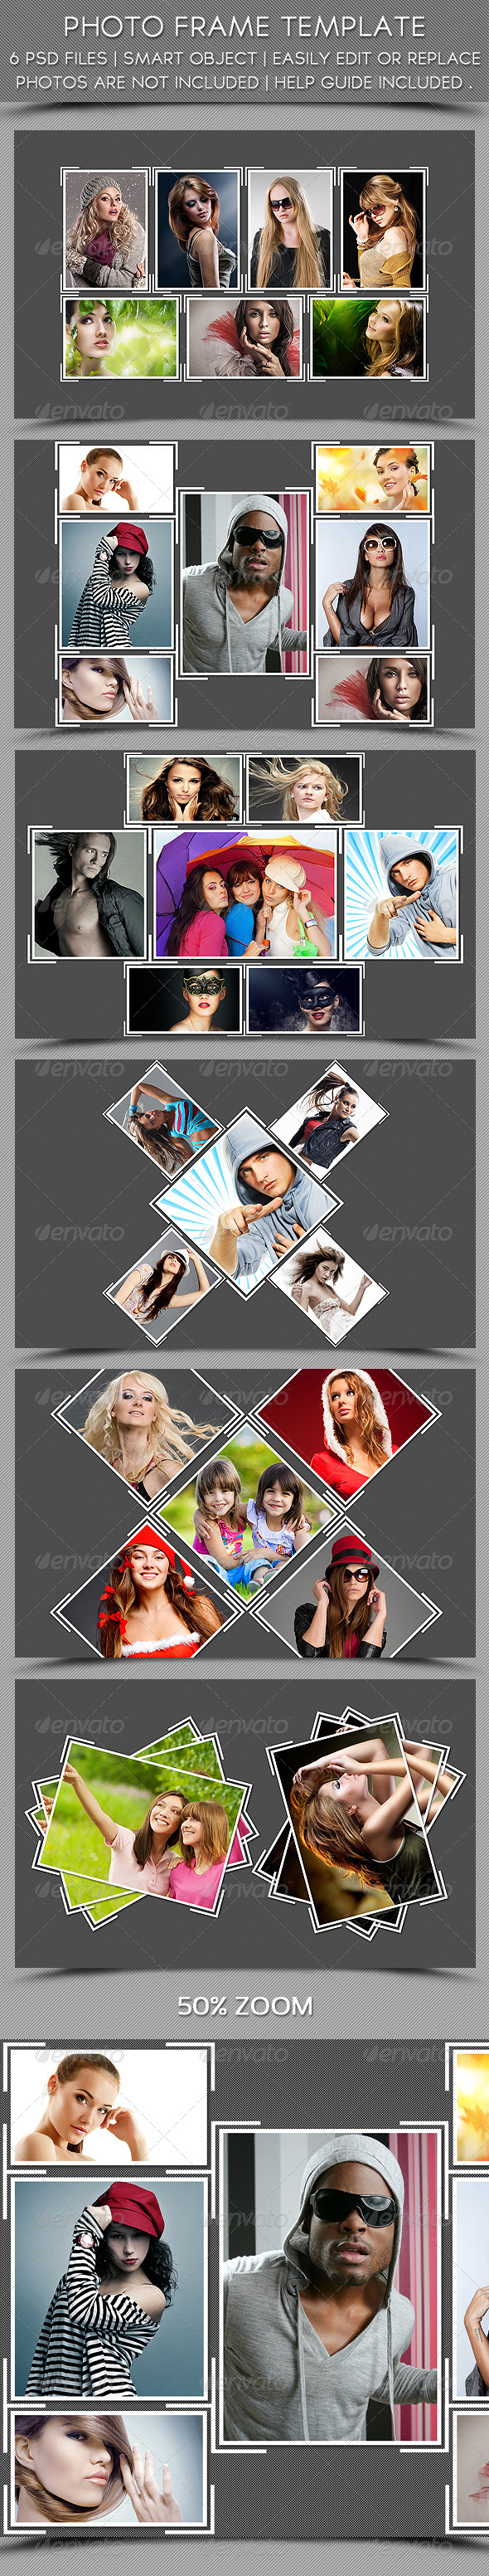 GraphicRiver Photo Frame Template 5483295